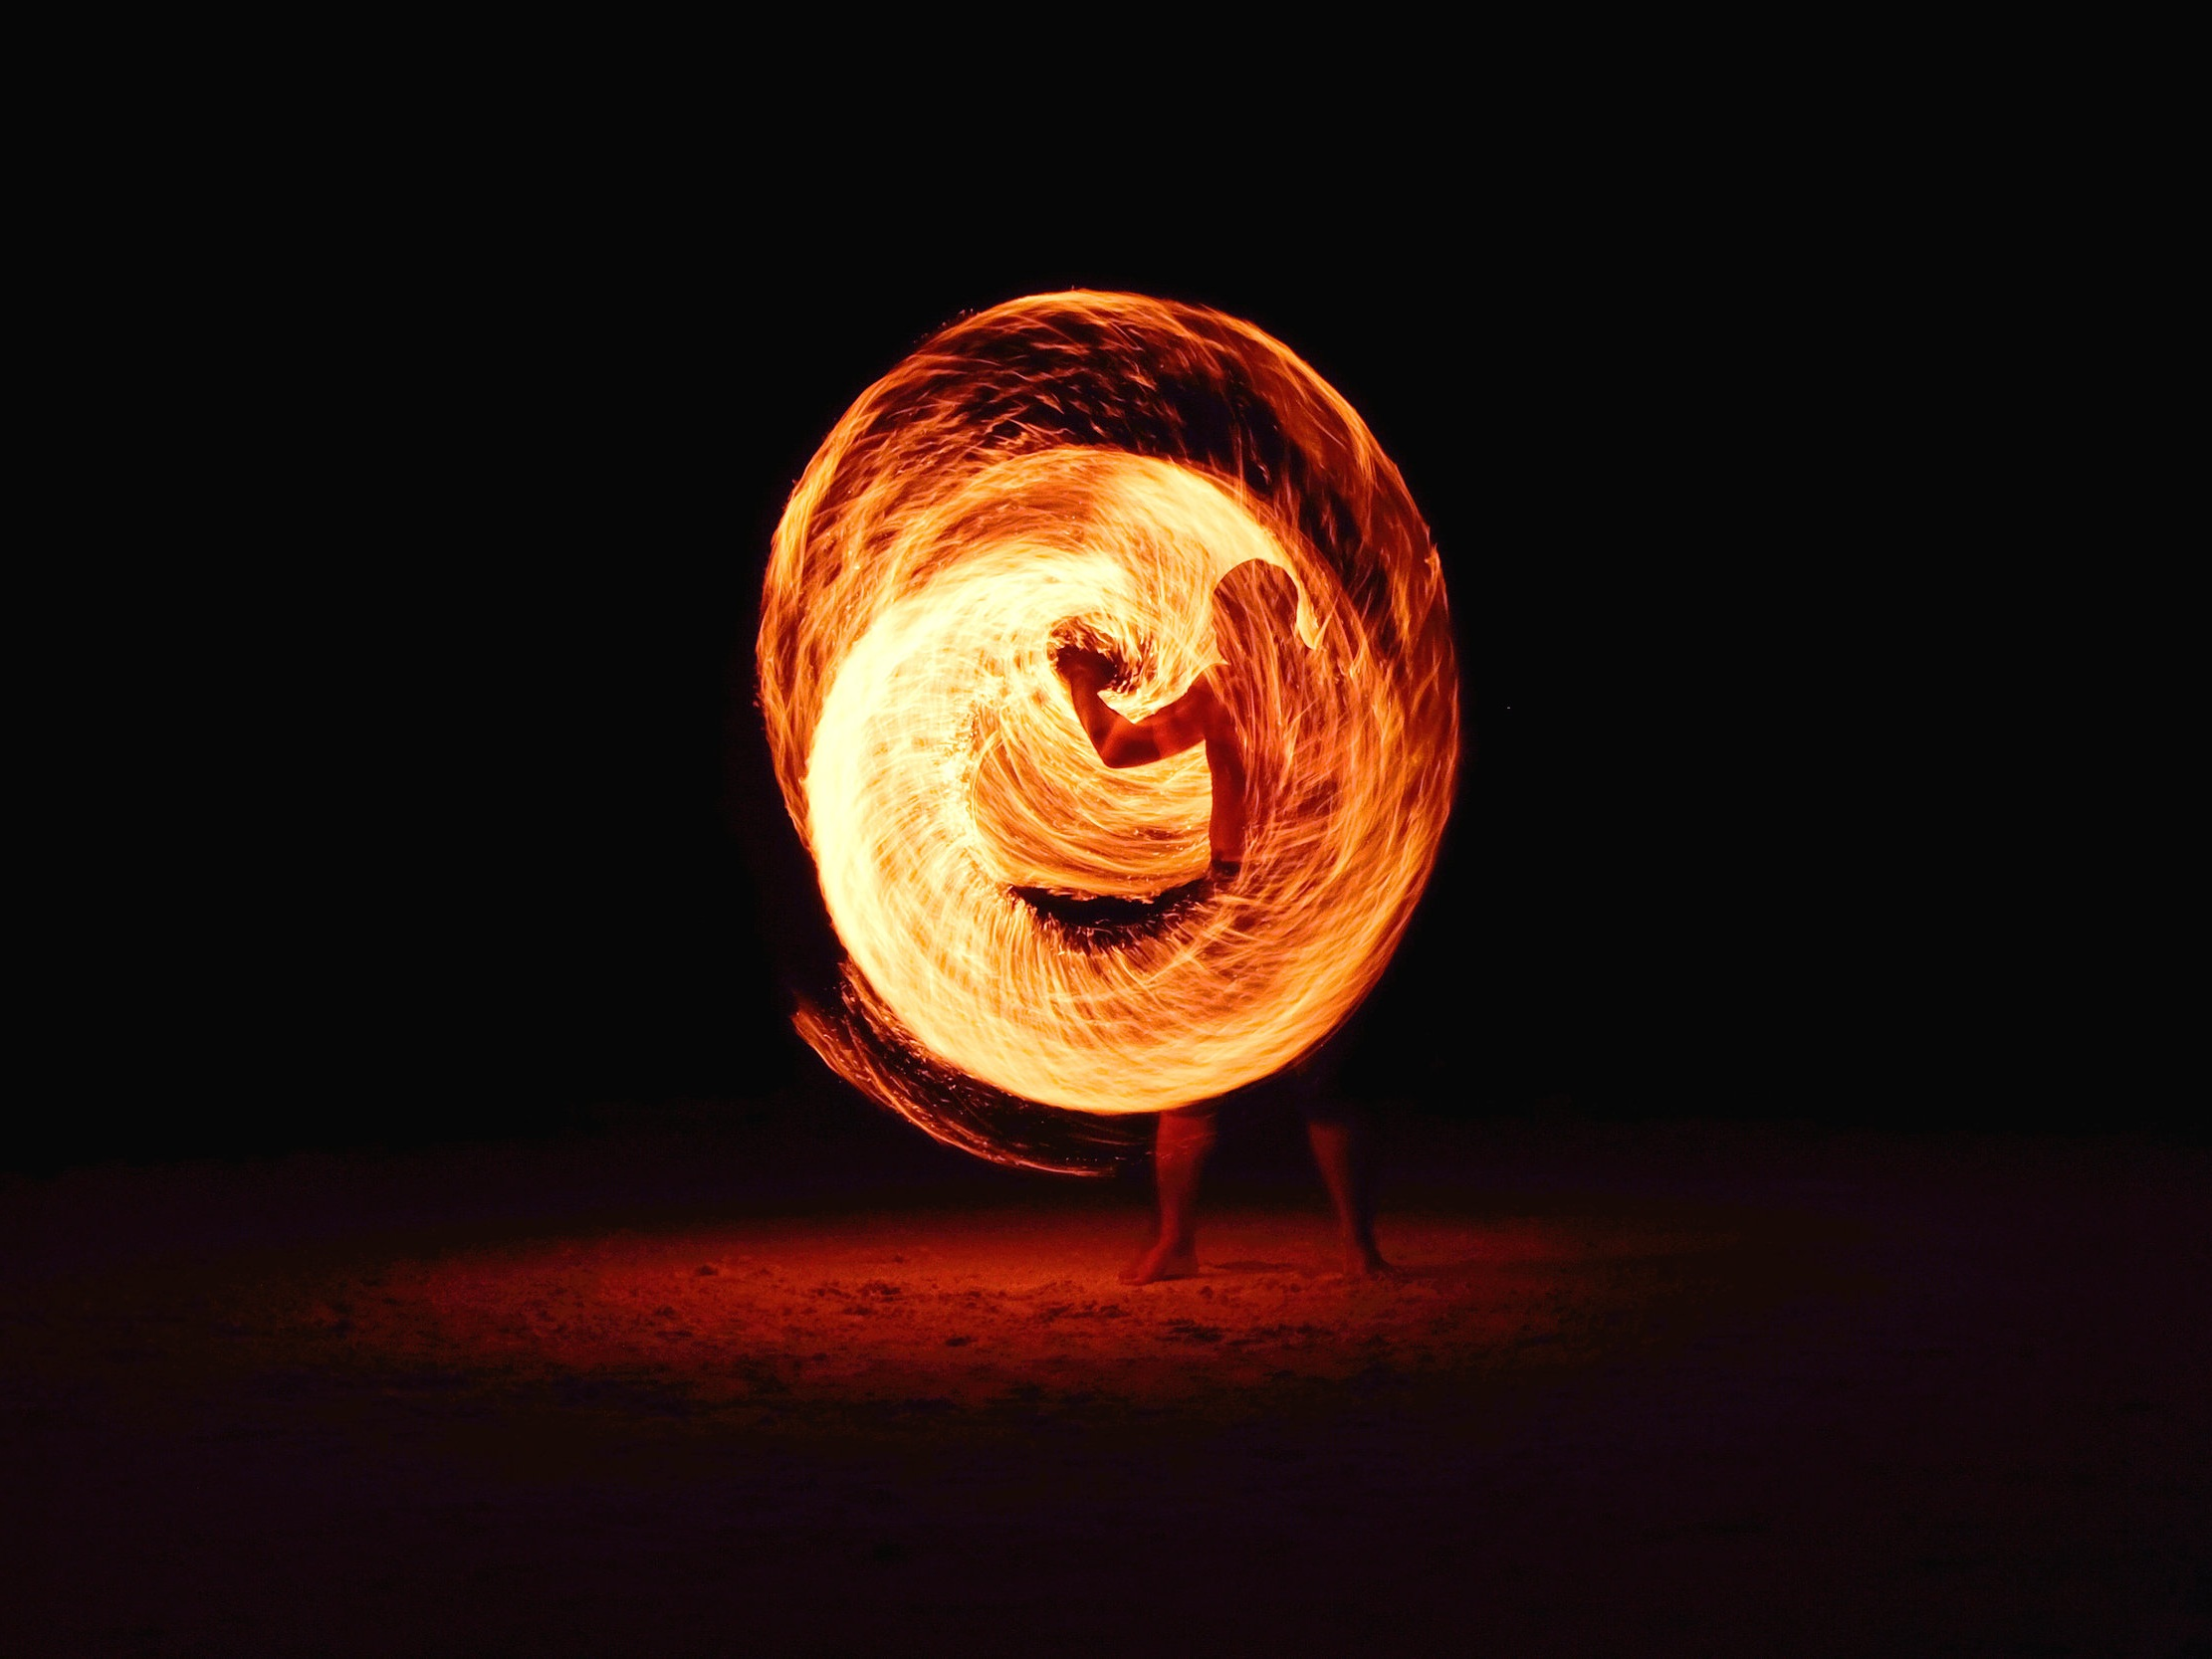 fire+photography